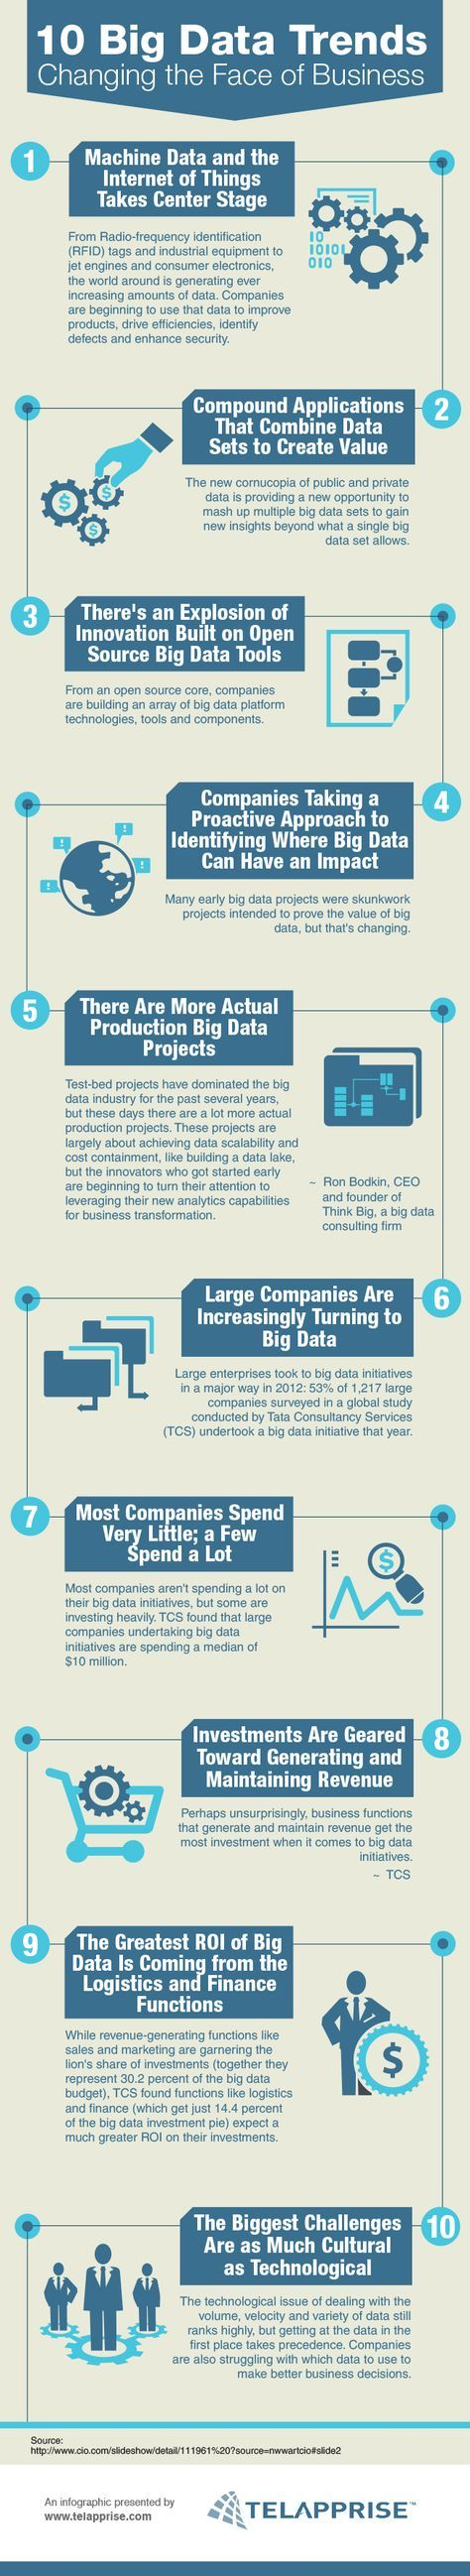 Enterprise analytics serving big data projects for healthcare - 10 Big Data Trends Changing The Face Of Business Bigdata Infographic